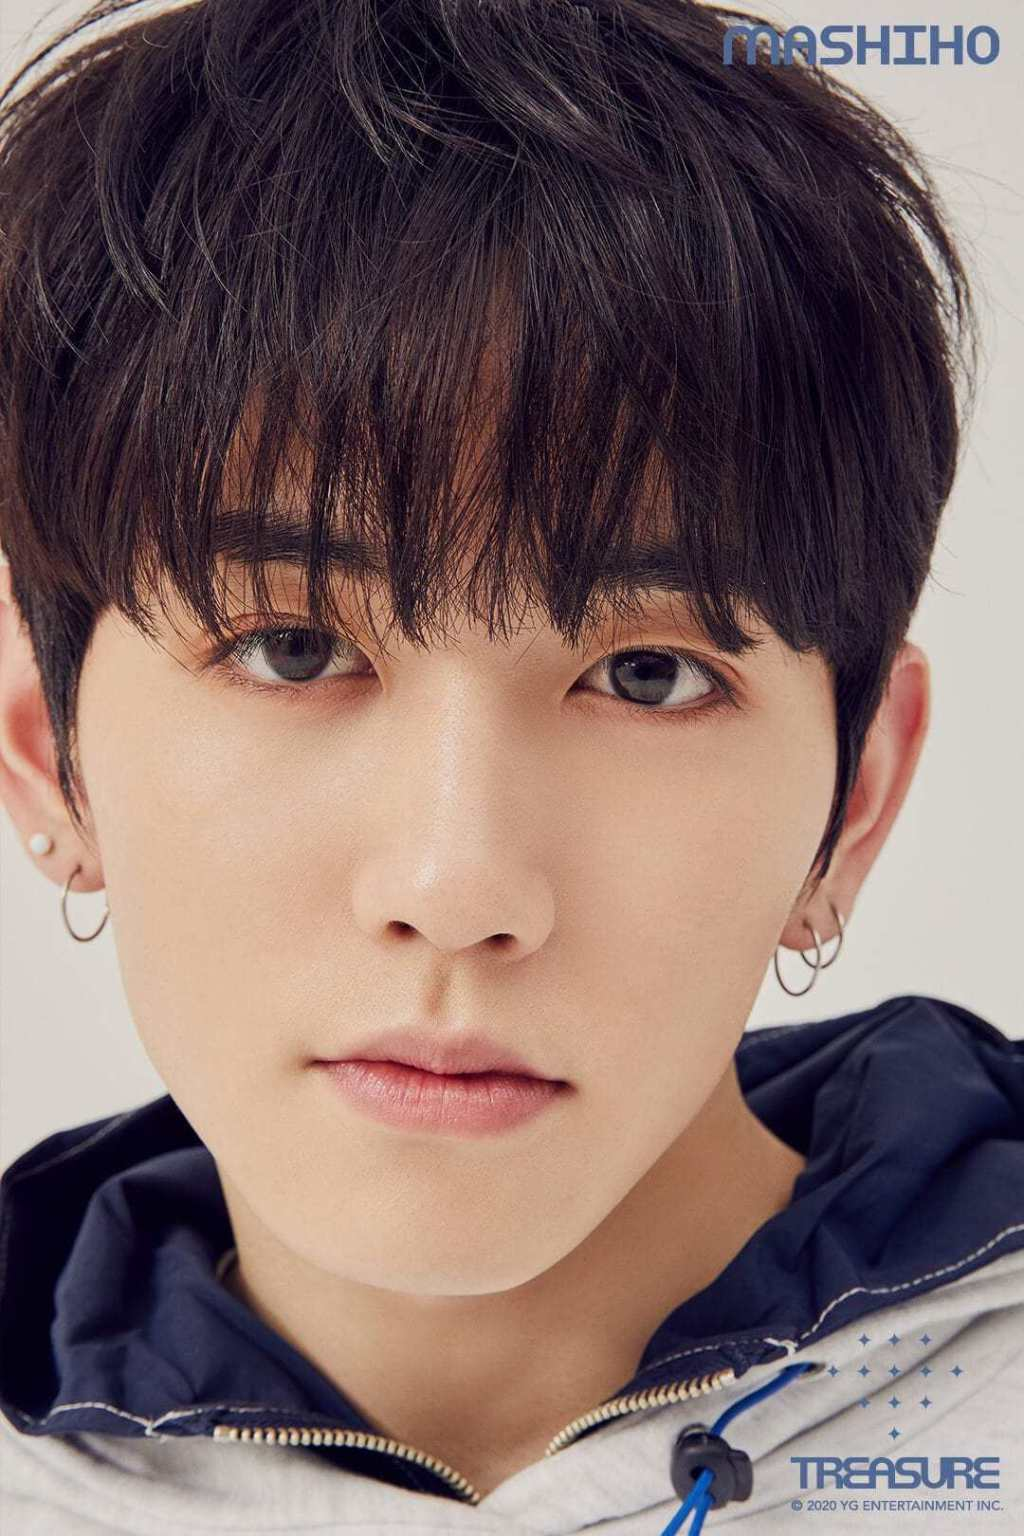 TREASURE Unveils Handsome Teaser Photos of Next Members Before Debut